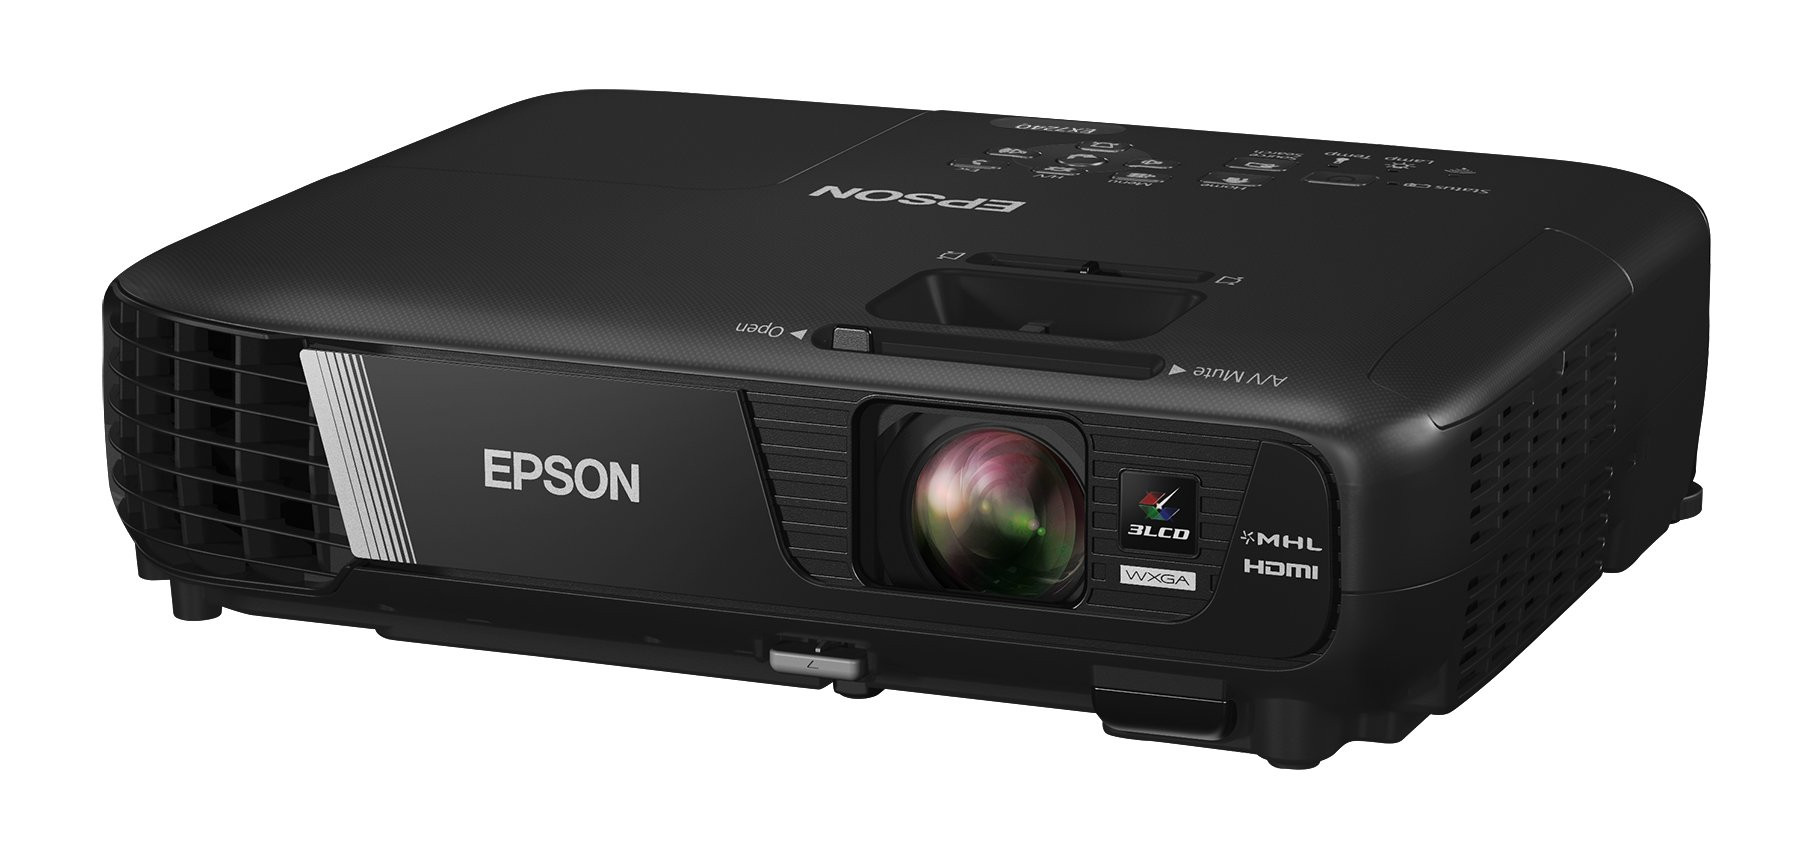 Epson EX7240 Pro WXGA 3LCD Projector Pro Wireless, 3200 Lumens Color Brightness by Epson (Image #1)